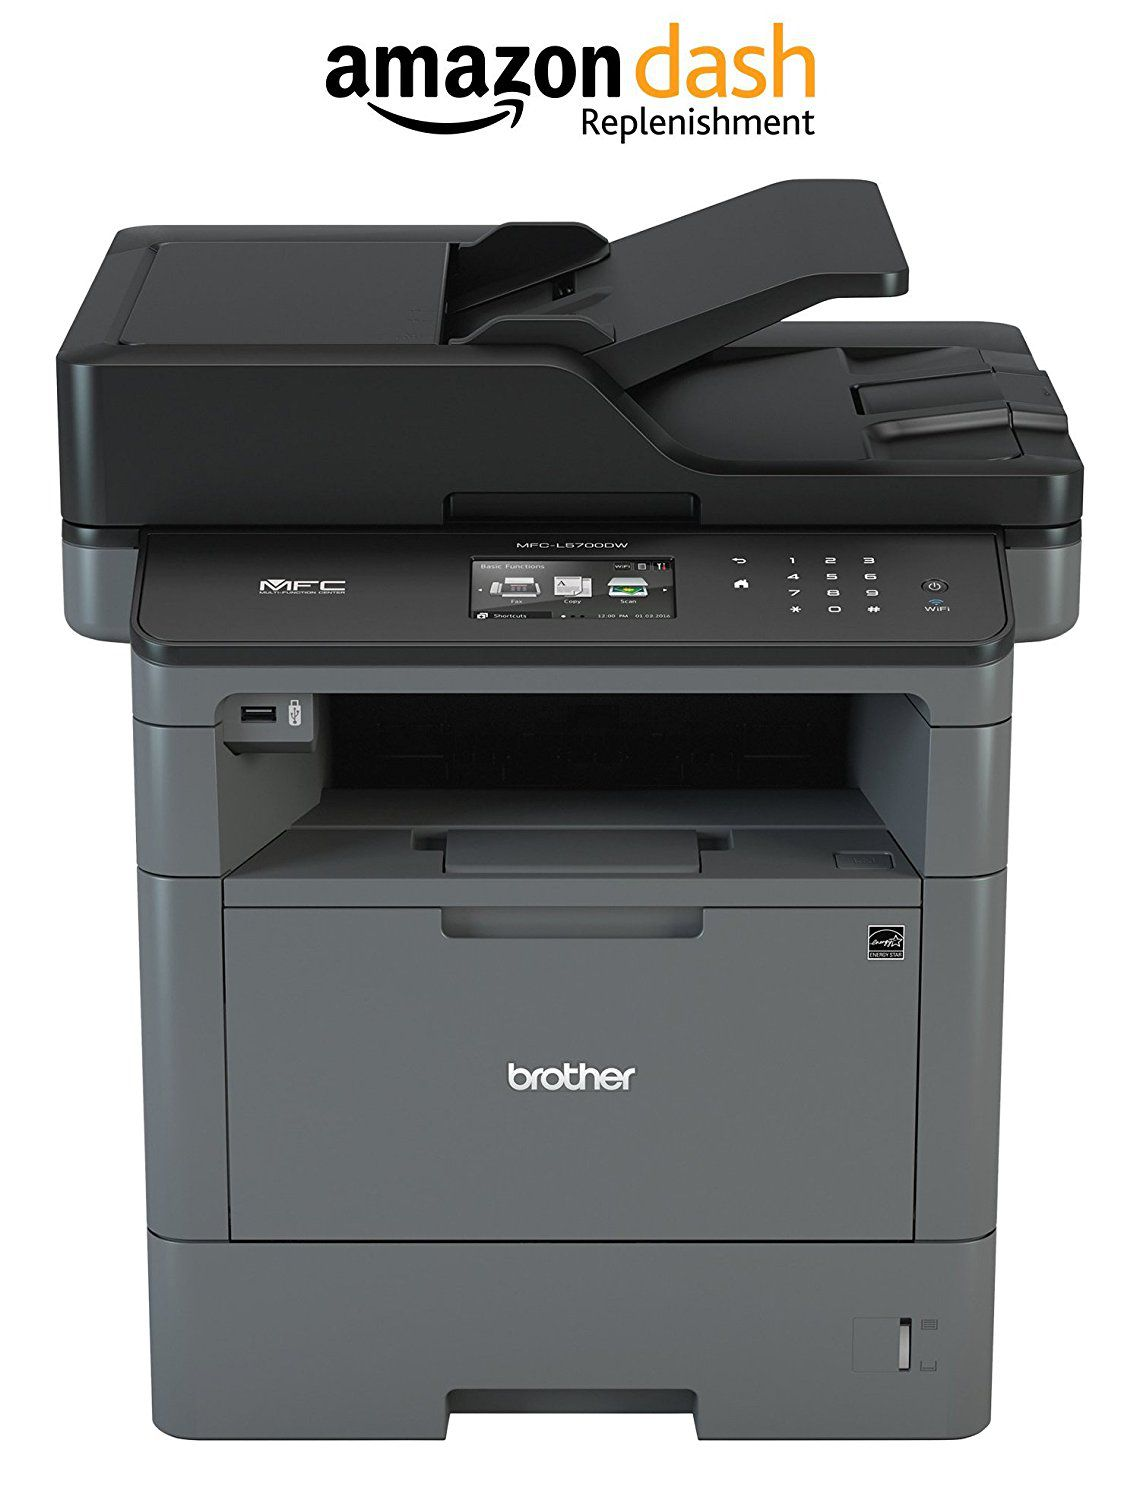 Brother MFCL5700DW